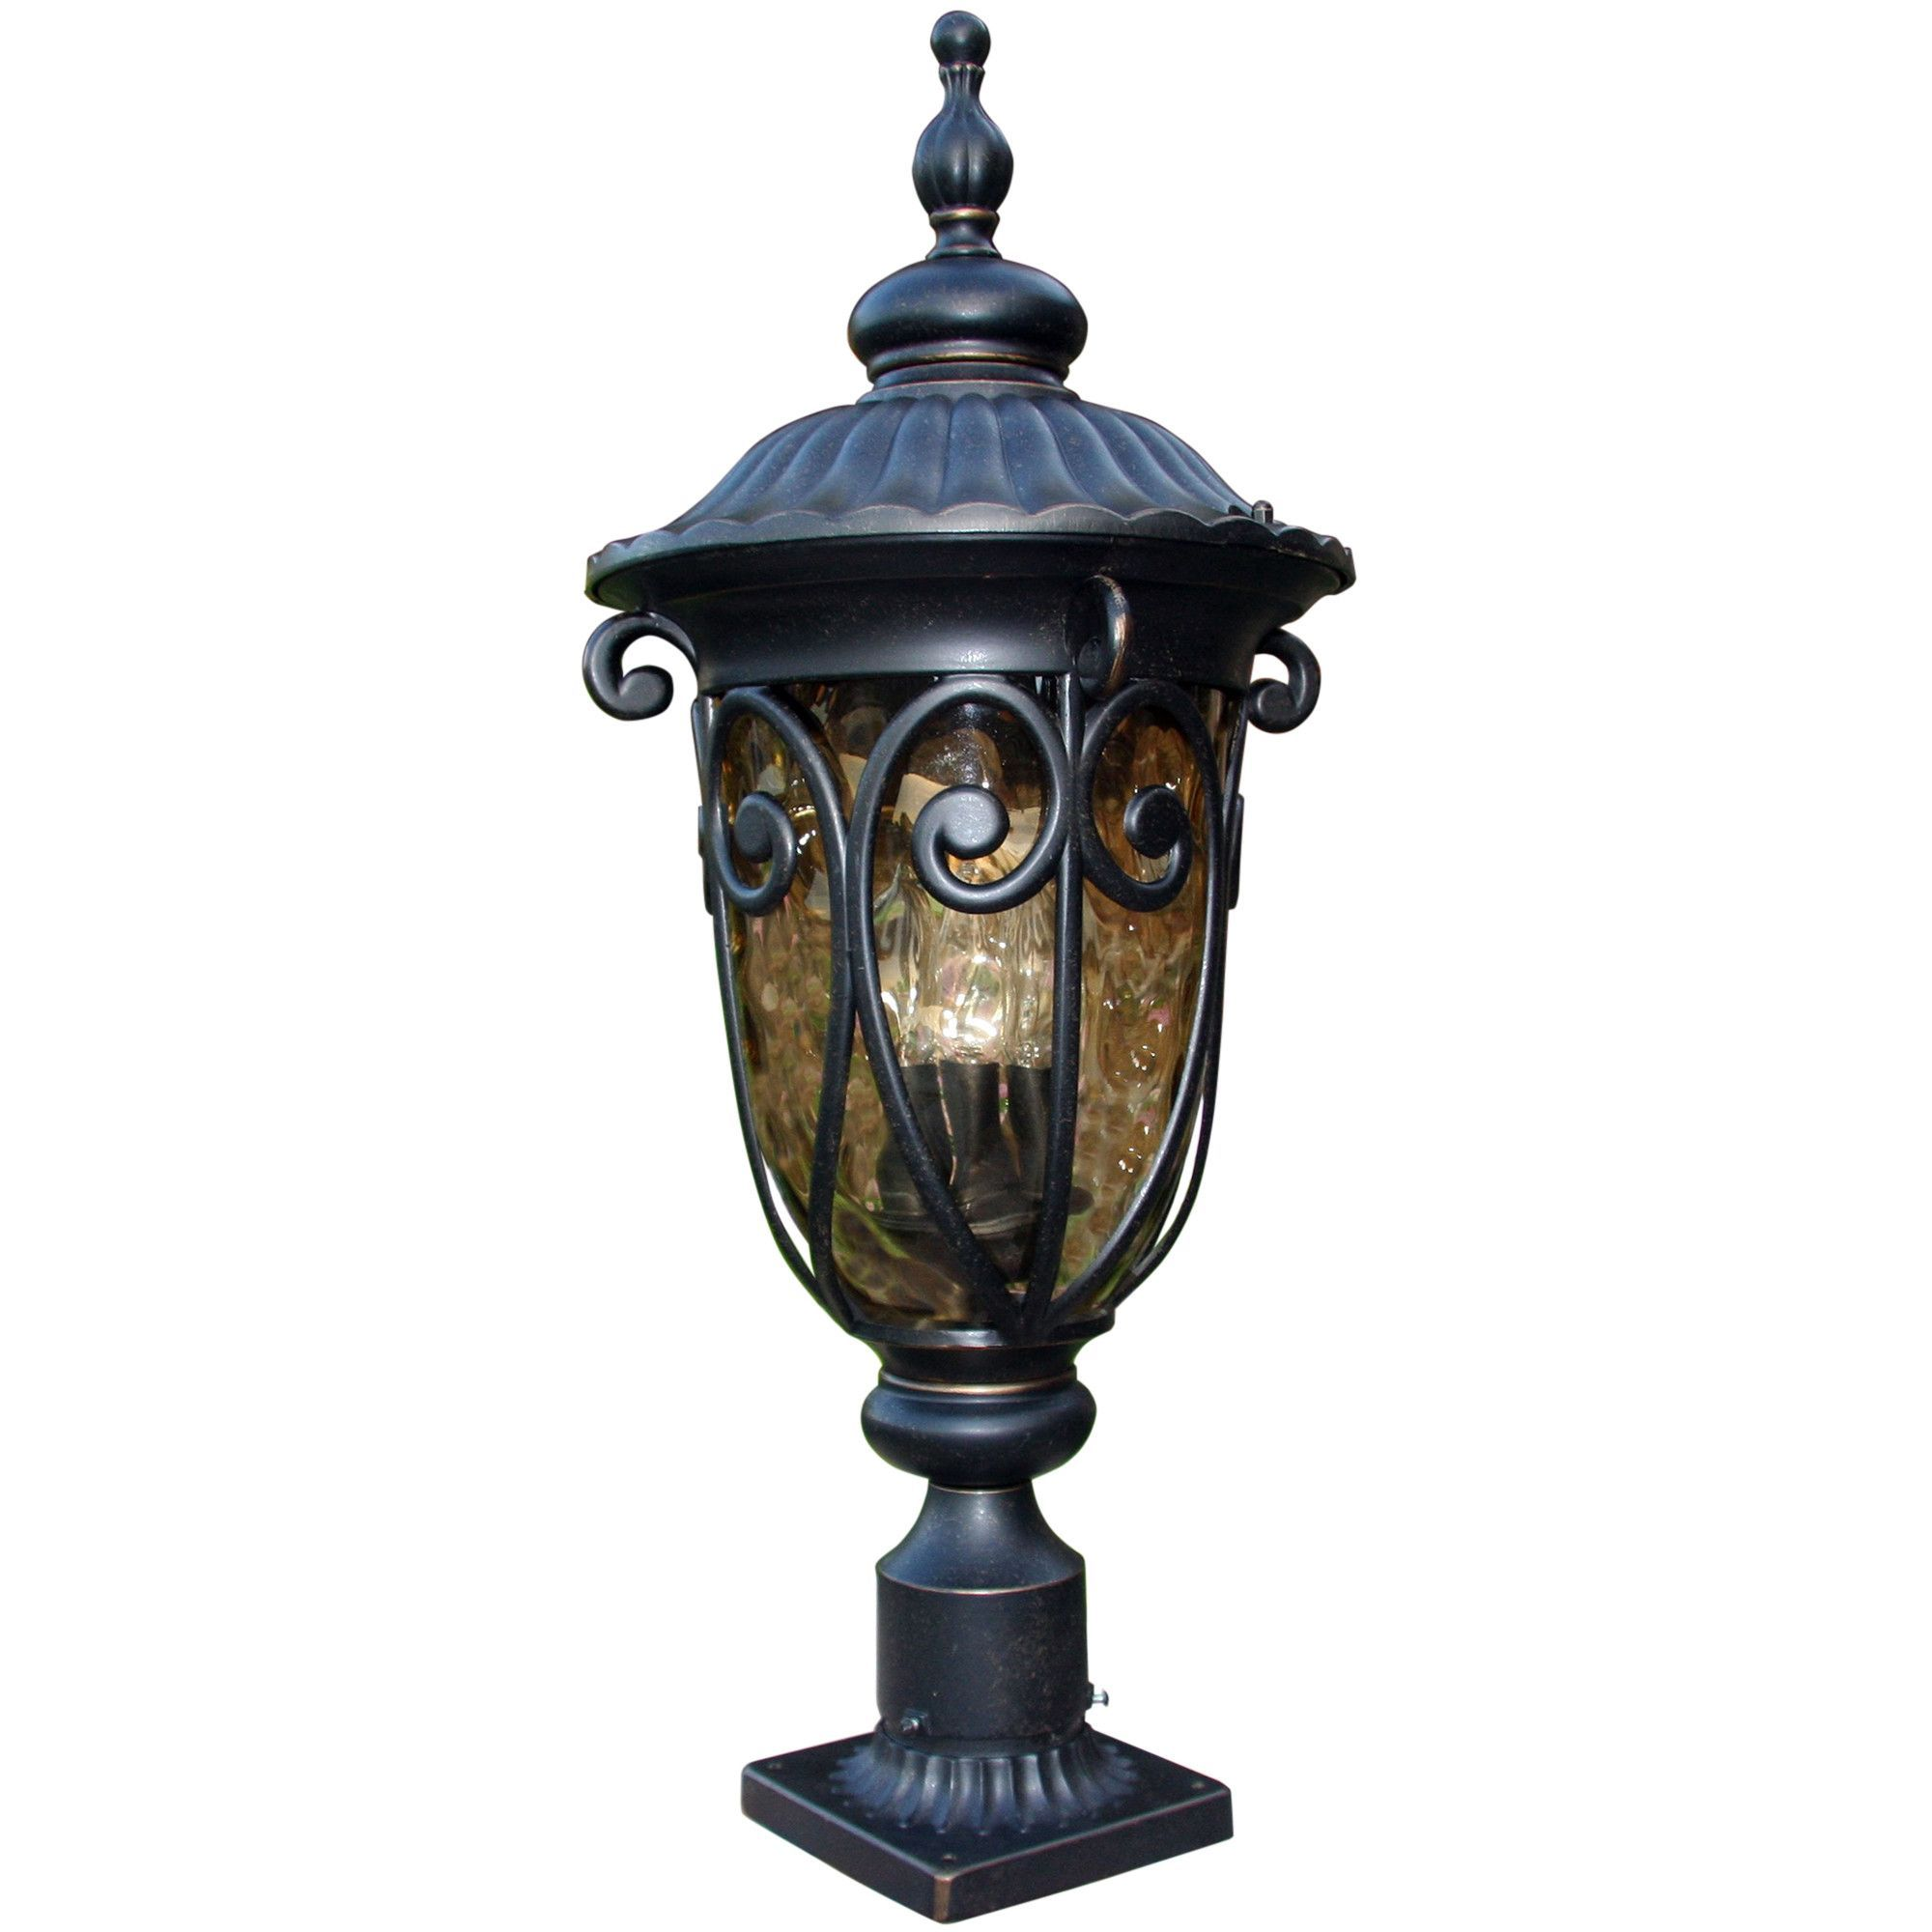 Glomar 3-Light White Wall Lantern Outdoor Candelabra Base Durably Crafted Metal